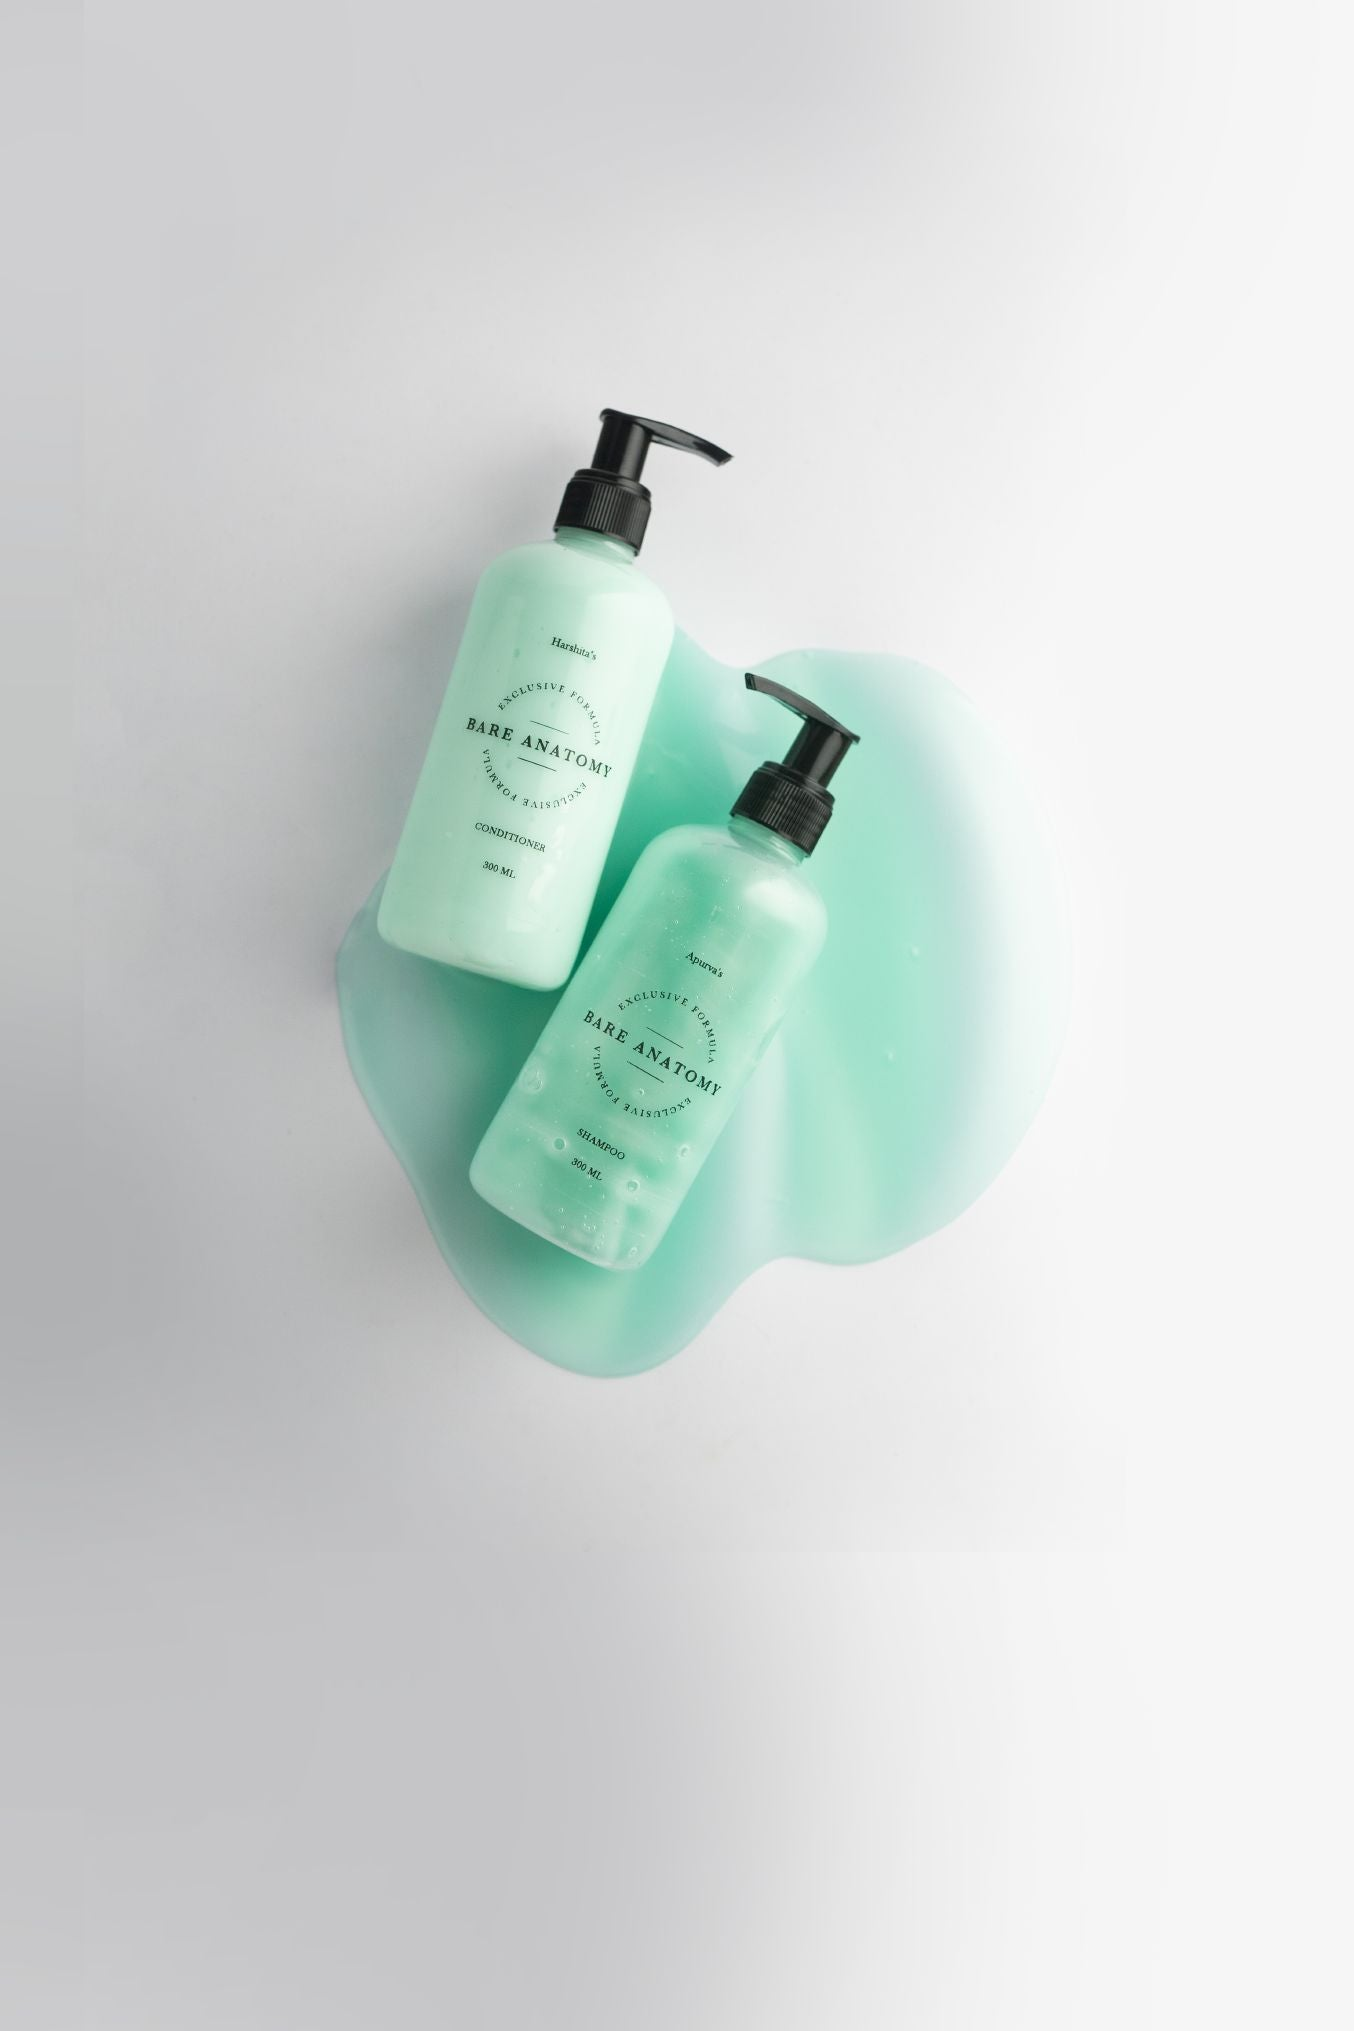 Bare Anatomy A customized duo formulated for your unique hair goals